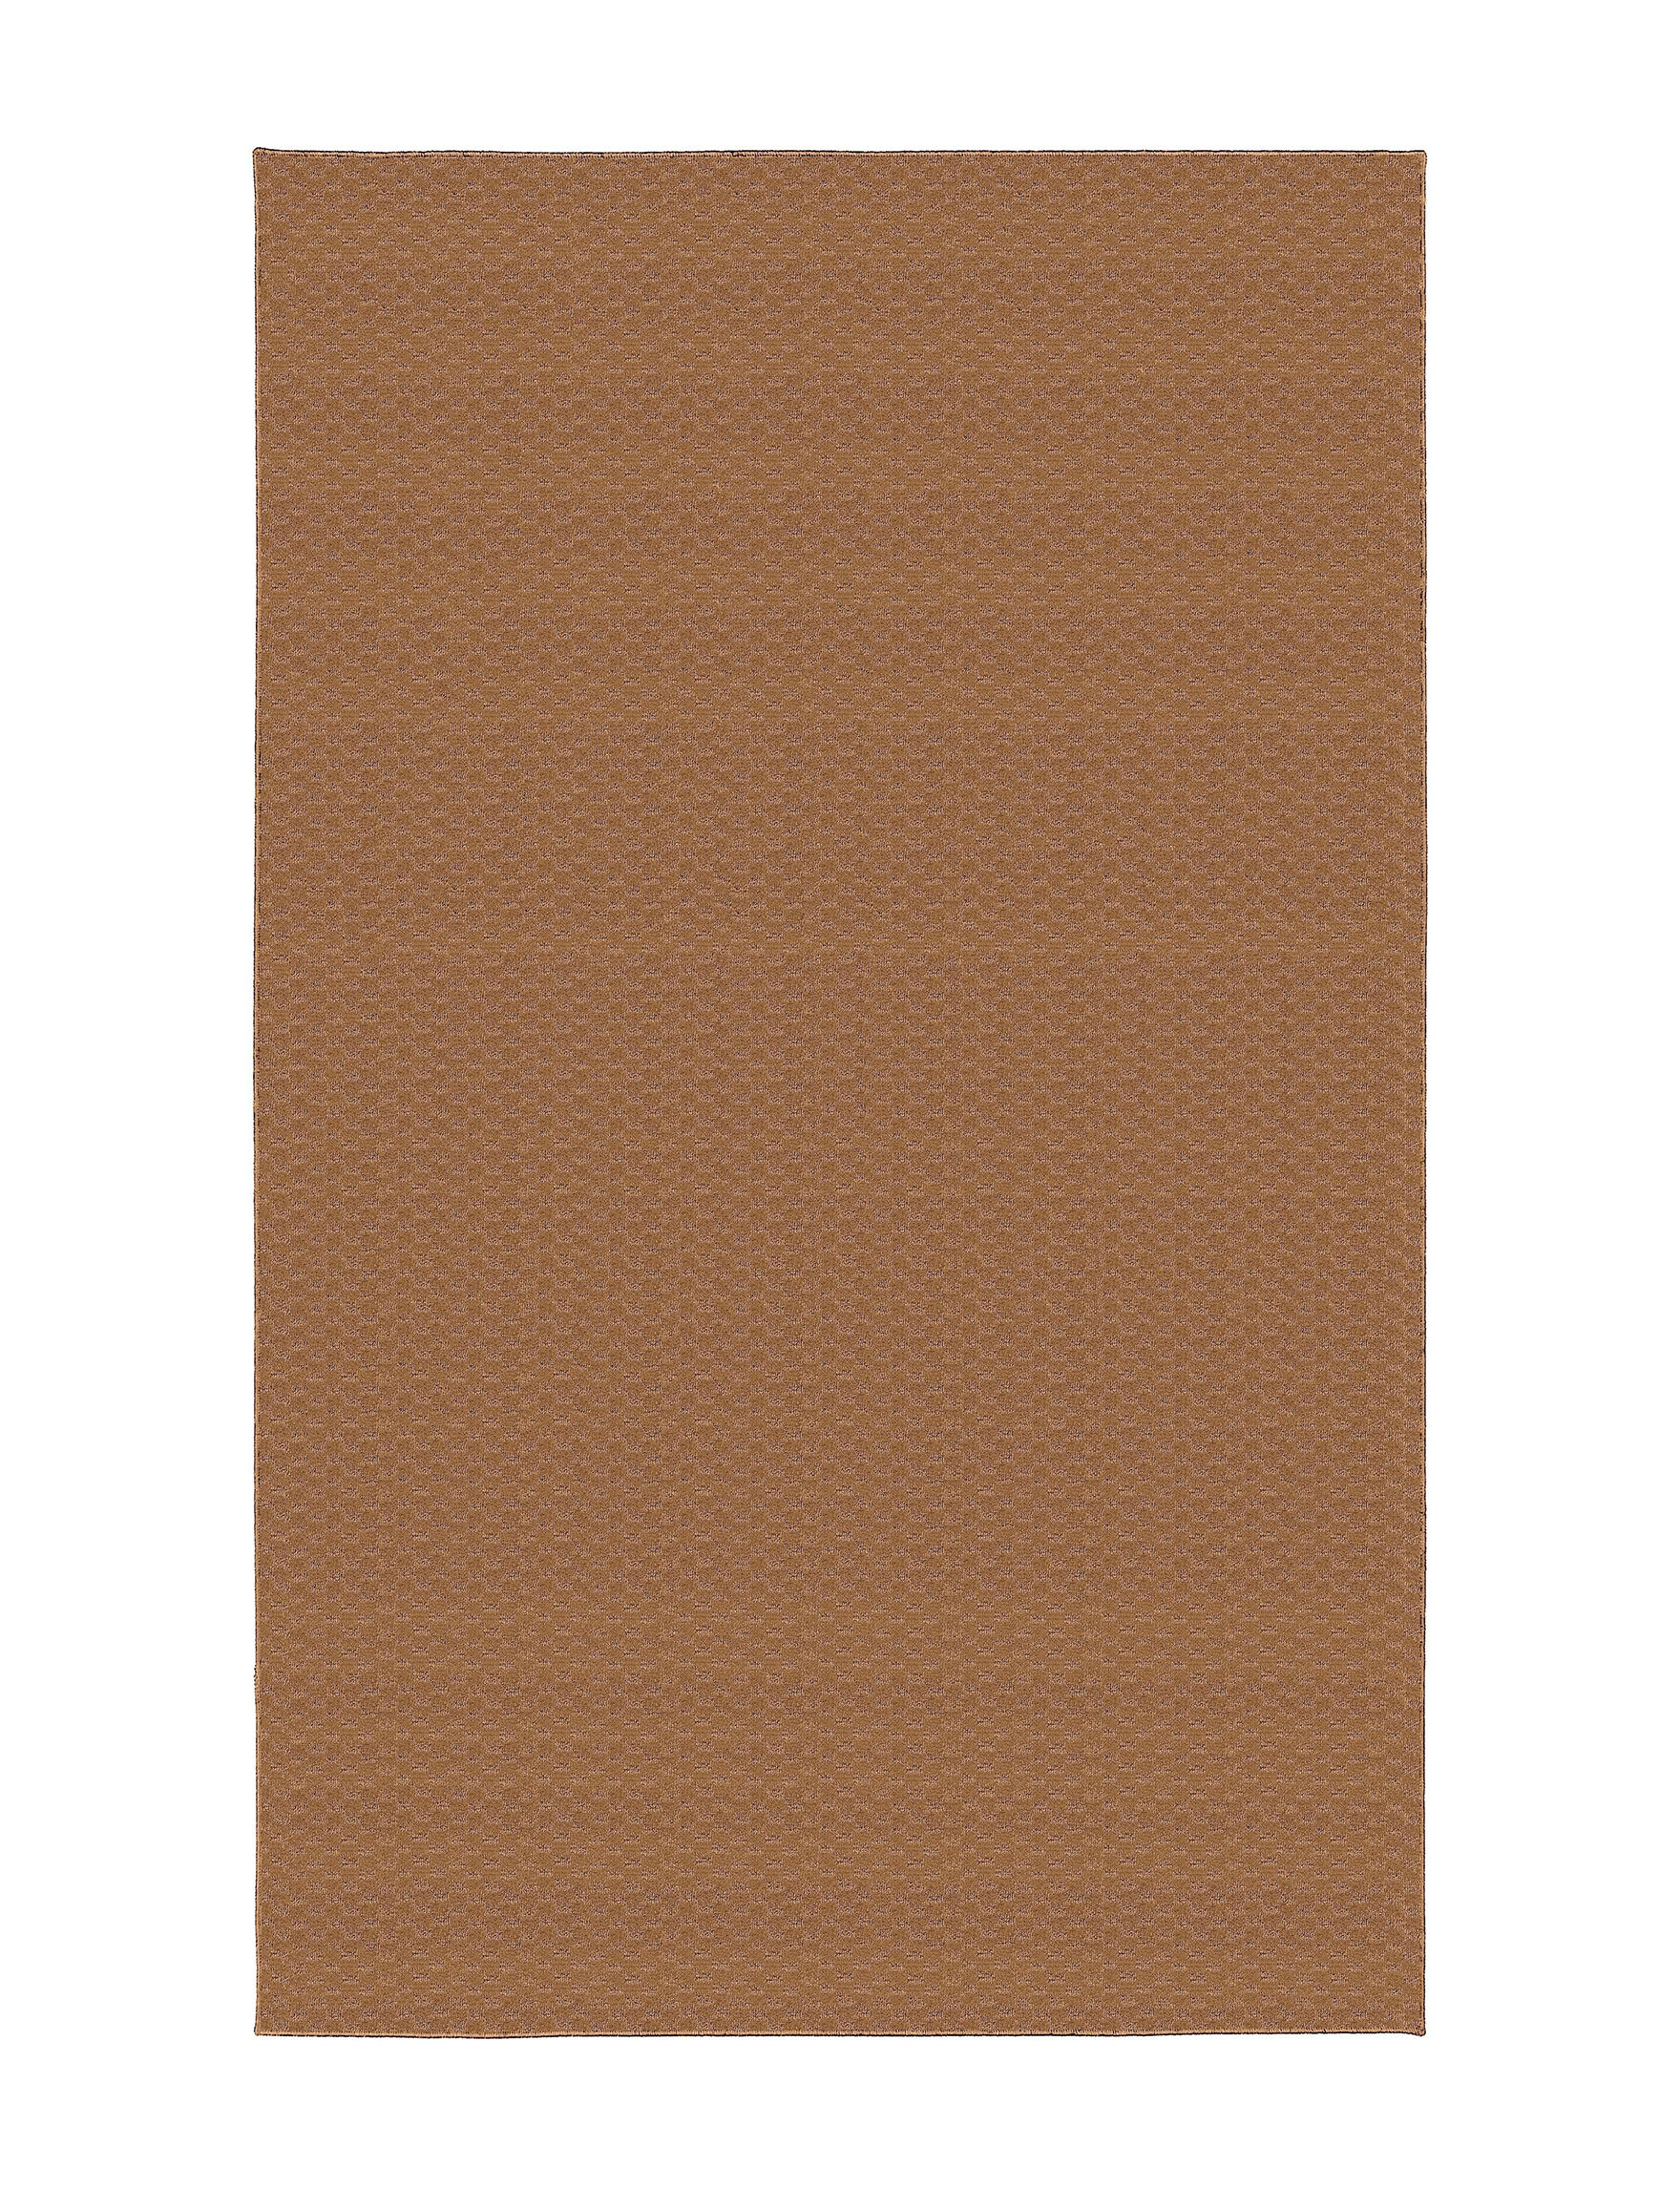 Garland Rug Tan Accent Rugs Area Rugs Rugs